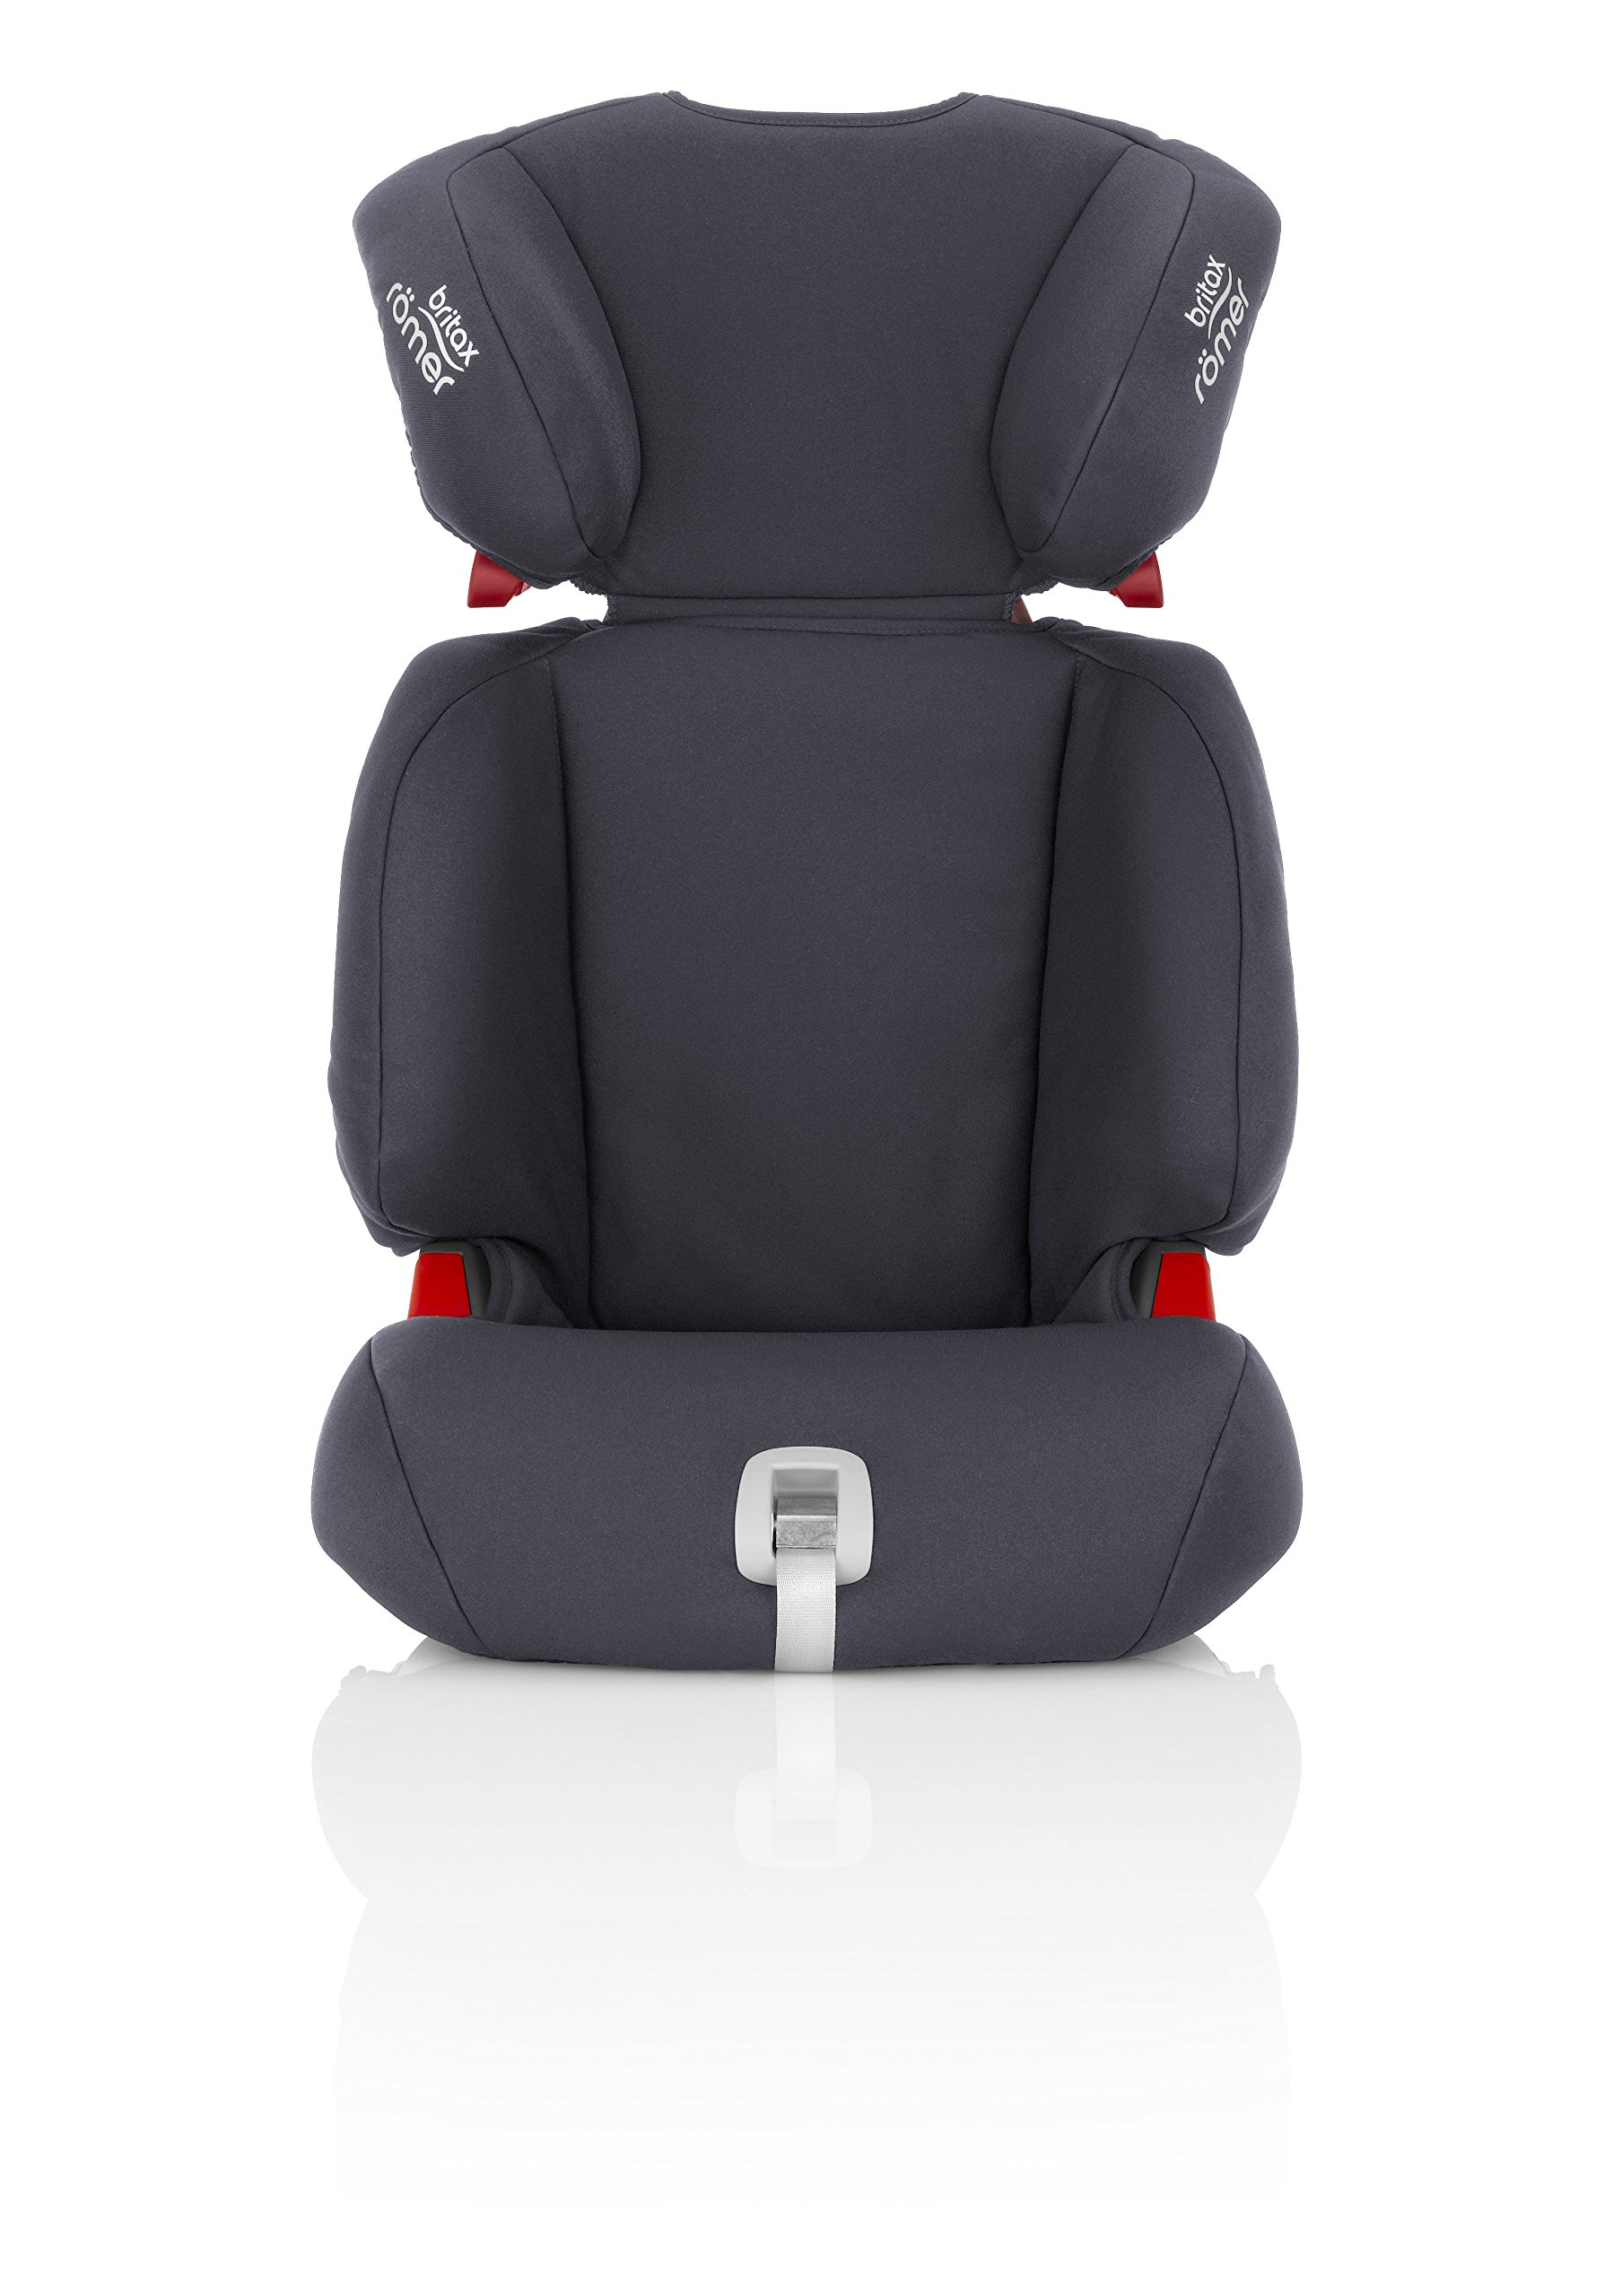 Britax Römer DISCOVERY SL Group 2-3 (15-36kg) Car Seat - Storm Grey  Our high back boosters protect your child in 3 ways: the seat shell provides head to hip protection for your child; the upper and lower belt guides provide correct positioning of the seat belt; and the padded headrest provides safety and comfort. Adjustable backrest - the child seat's adjustable backrest allows you to match the angle of the vehicle seat, providing a better fit and a comfortable position for your child. Easy adjustable headrest - our easy-to-adjust headrest was designed especially for older children, when using the 3-point seat belt to secure them in the car seat. 2